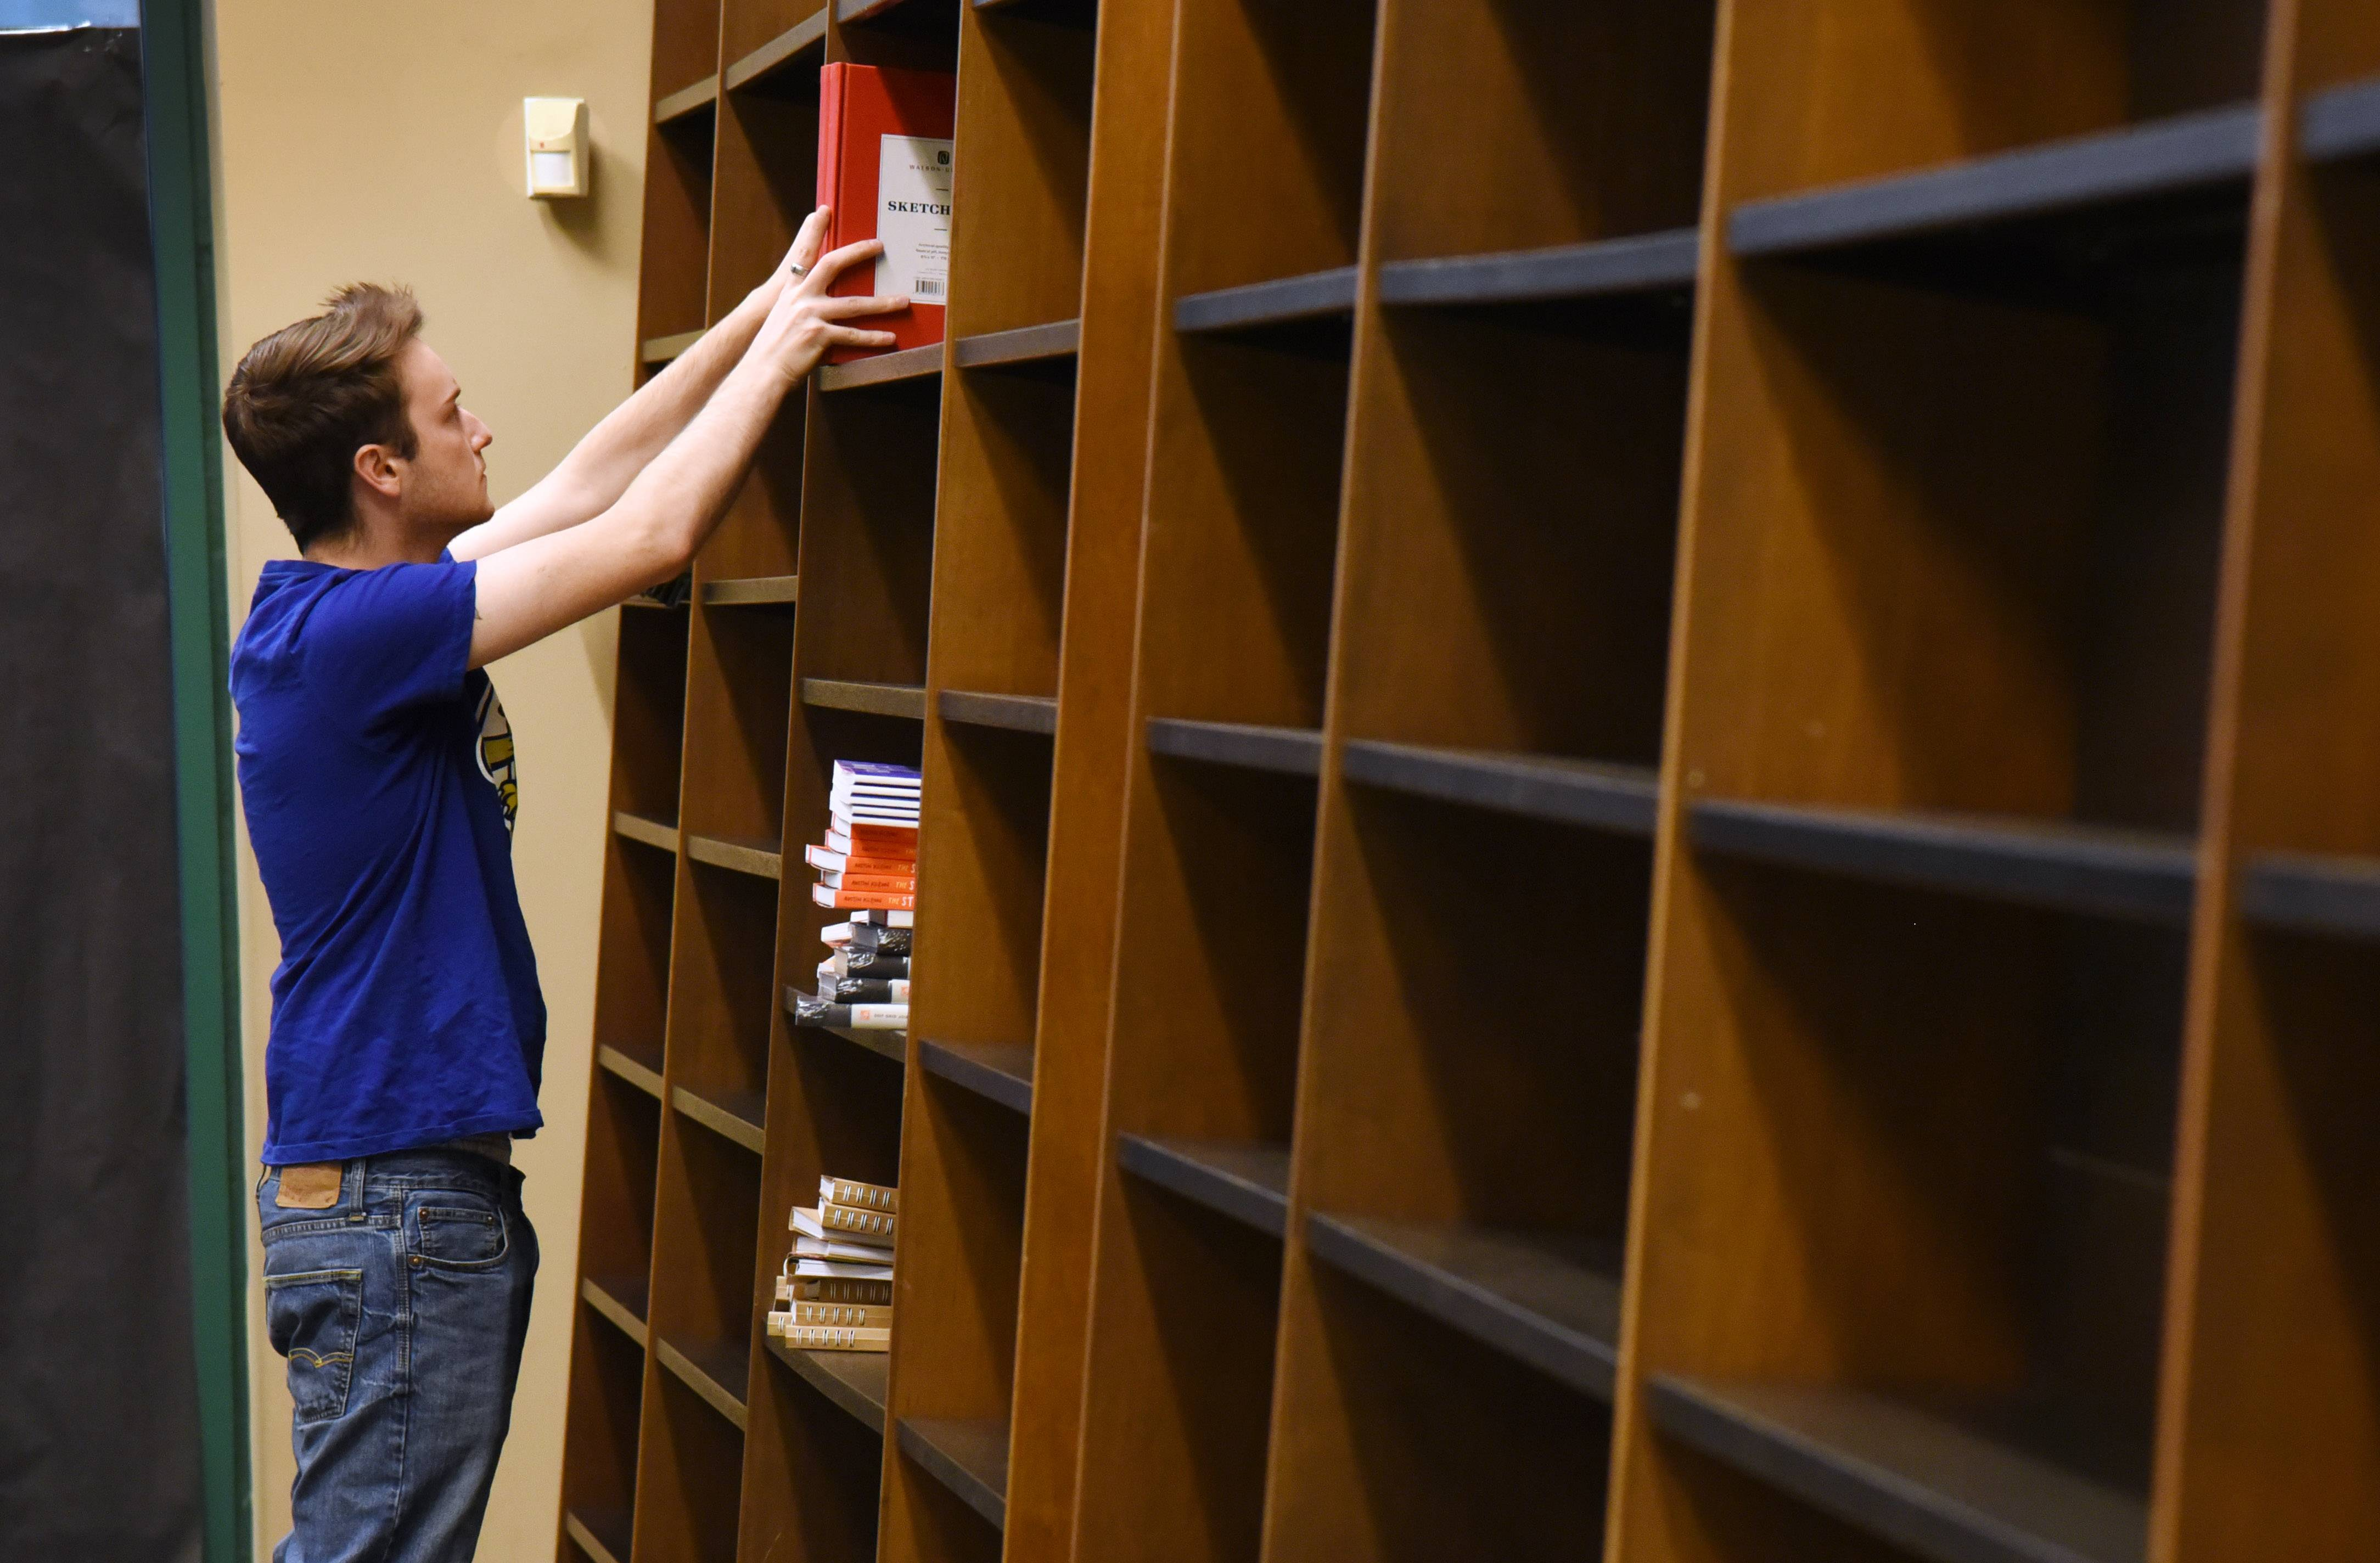 Barbara's Bookstore senior bookseller Ryan Morris fills wall shelves Monday to prepare for the store's Wednesday opening in the former Barnes & Noble space at Hawthorn Mall in Vernon Hills.